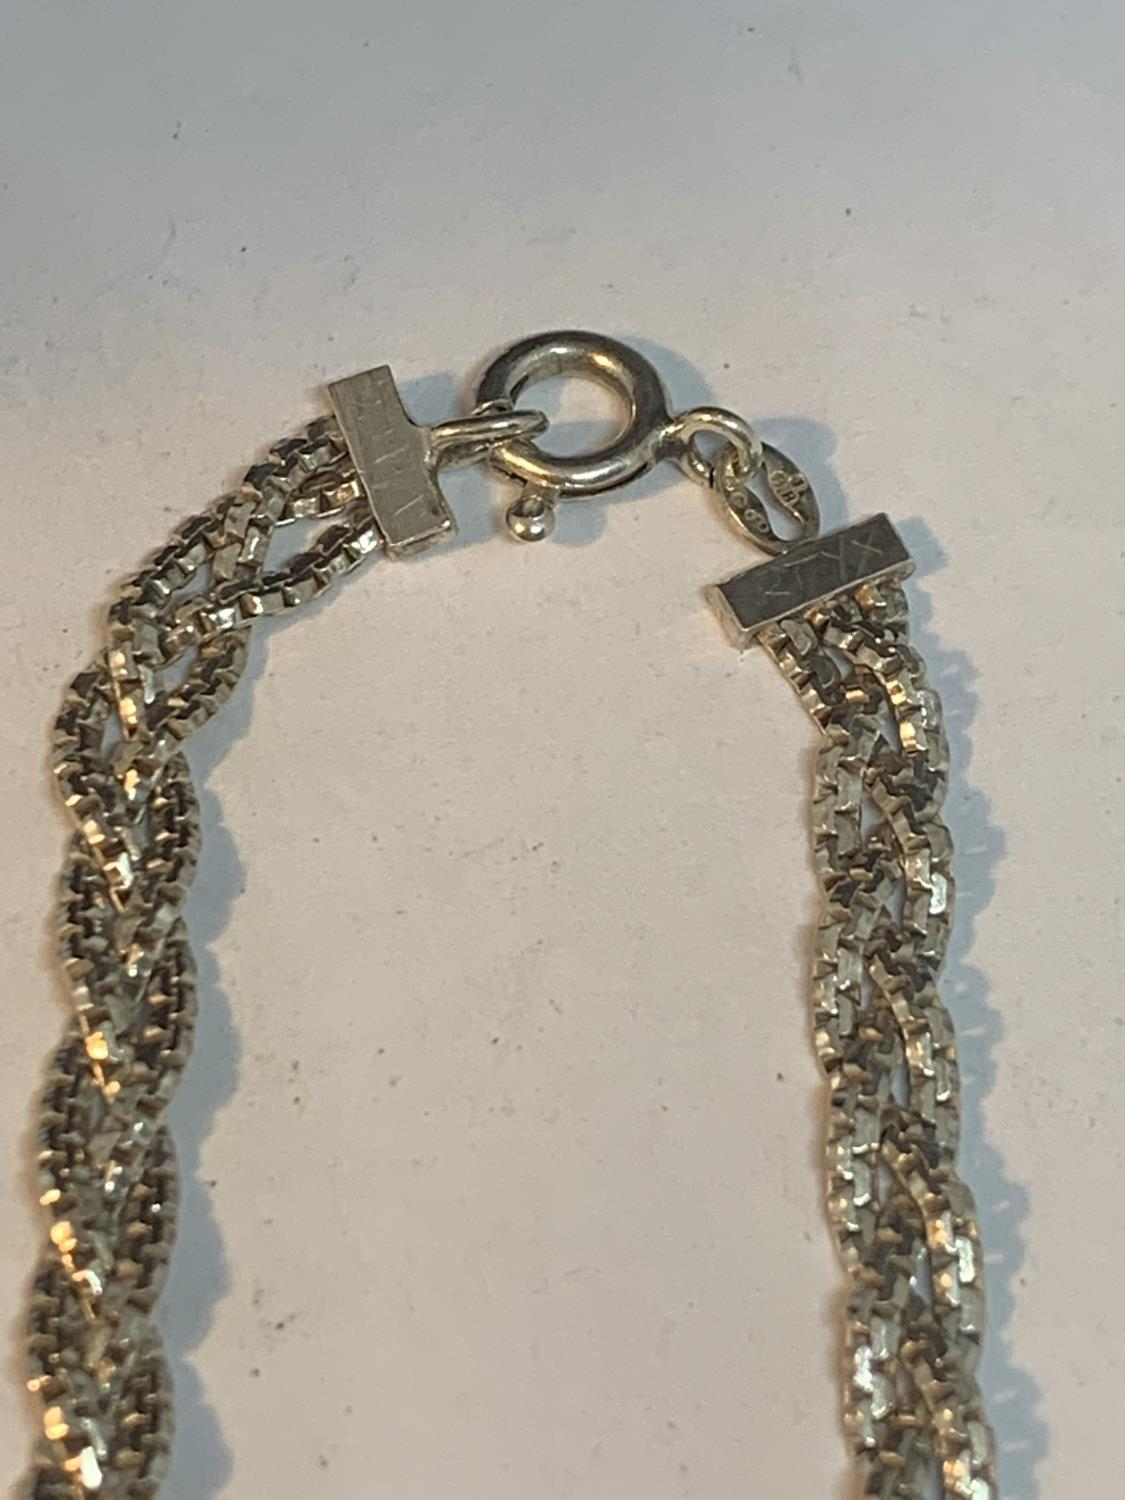 A SILVER TWISTED NECKLACE 16 INCHES LONG - Image 3 of 3